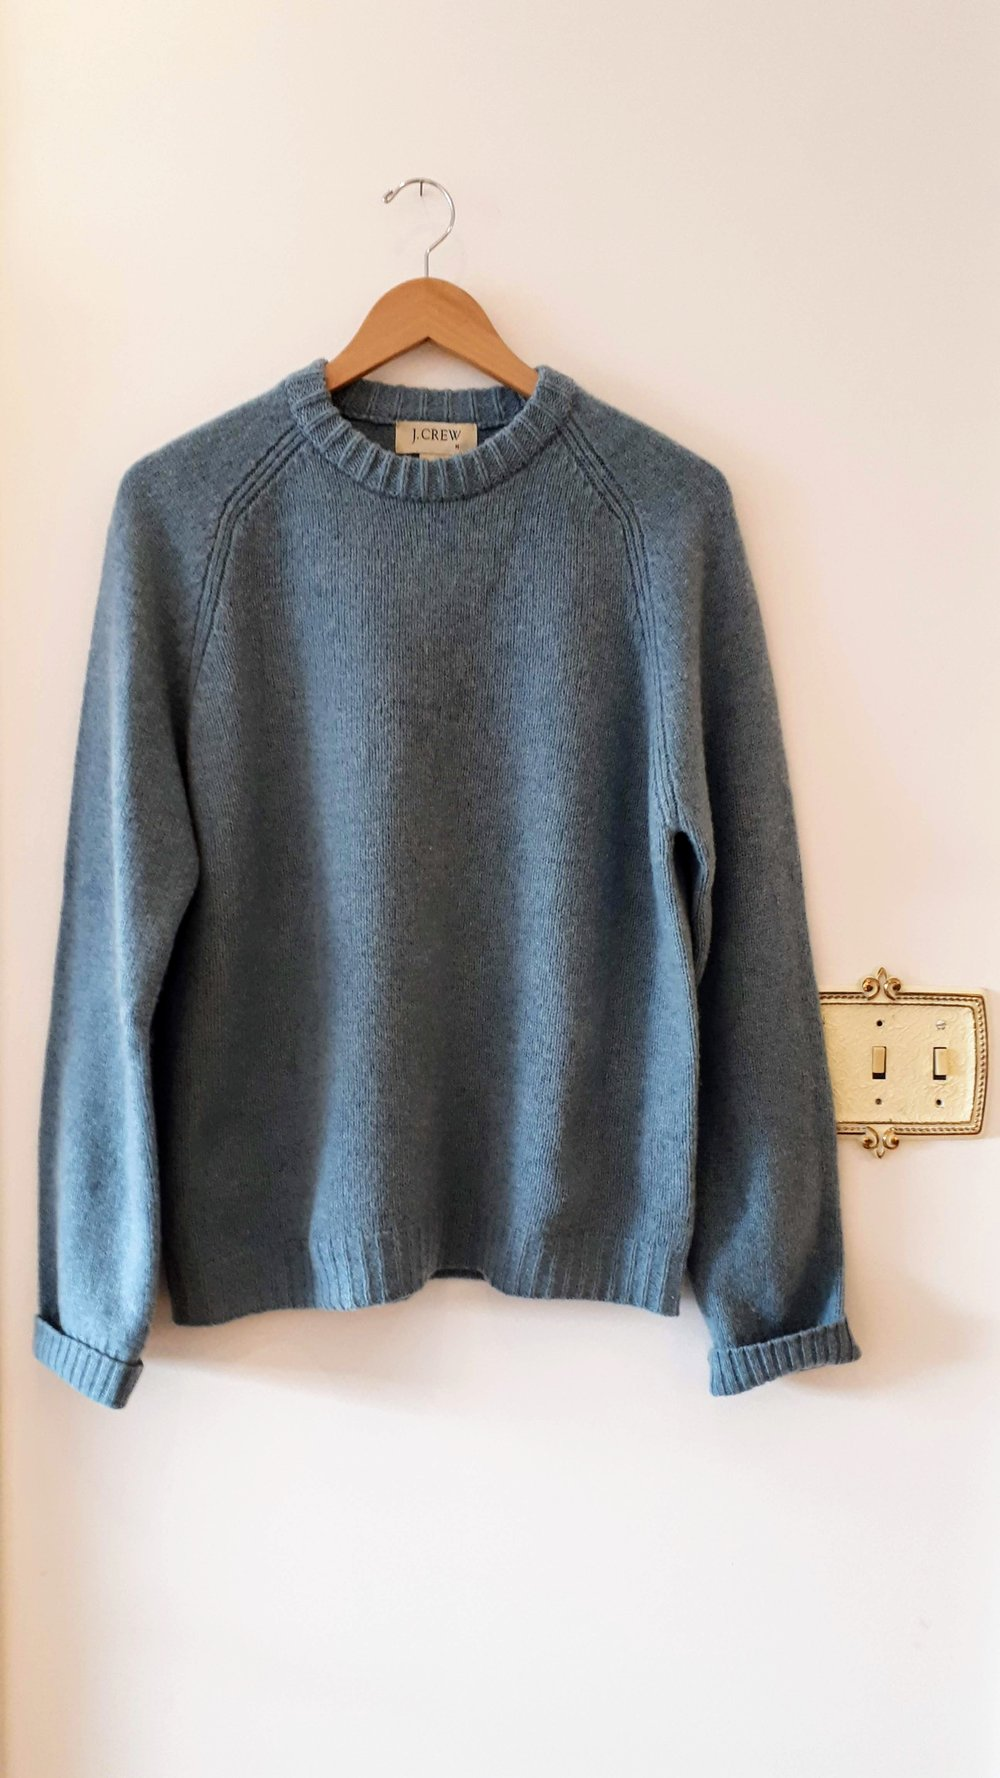 J Crew mens sweater (NWT); Size M, $42